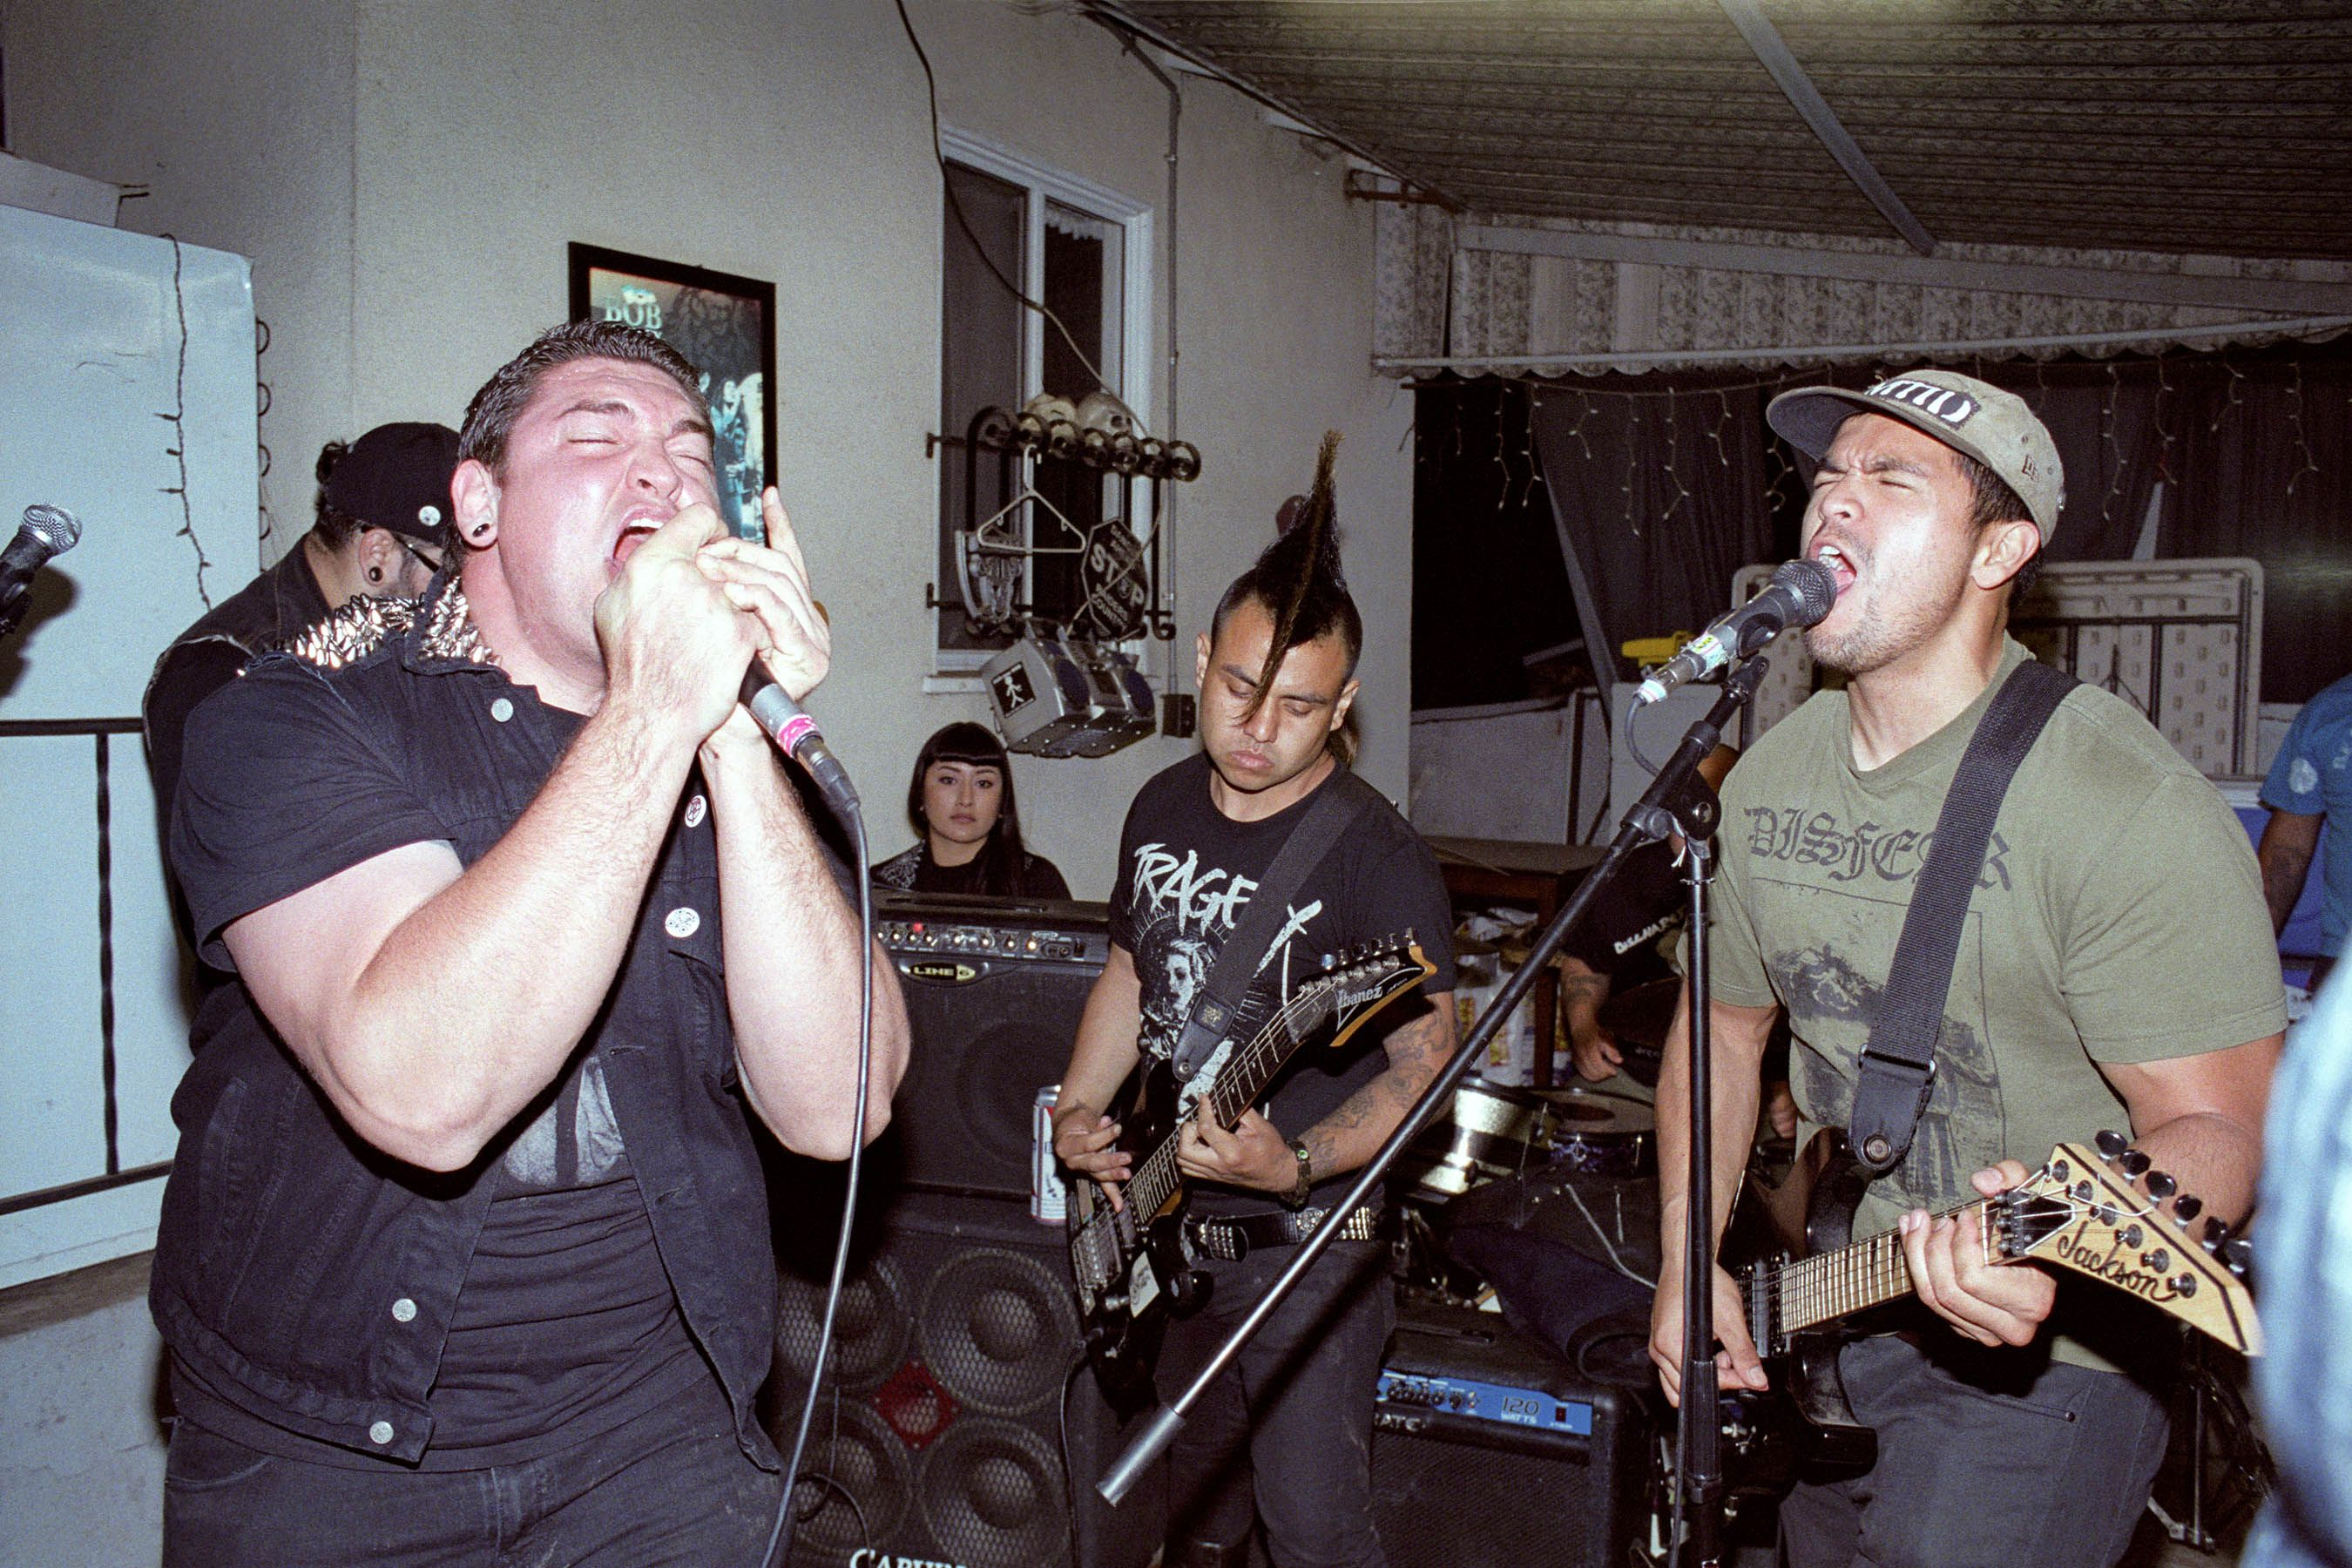 'Los Punks: We Are All We Have' dives deep into East LA and South Central's mosh pits to give us an intimate look at the overwhelmingly Latino punk scene.